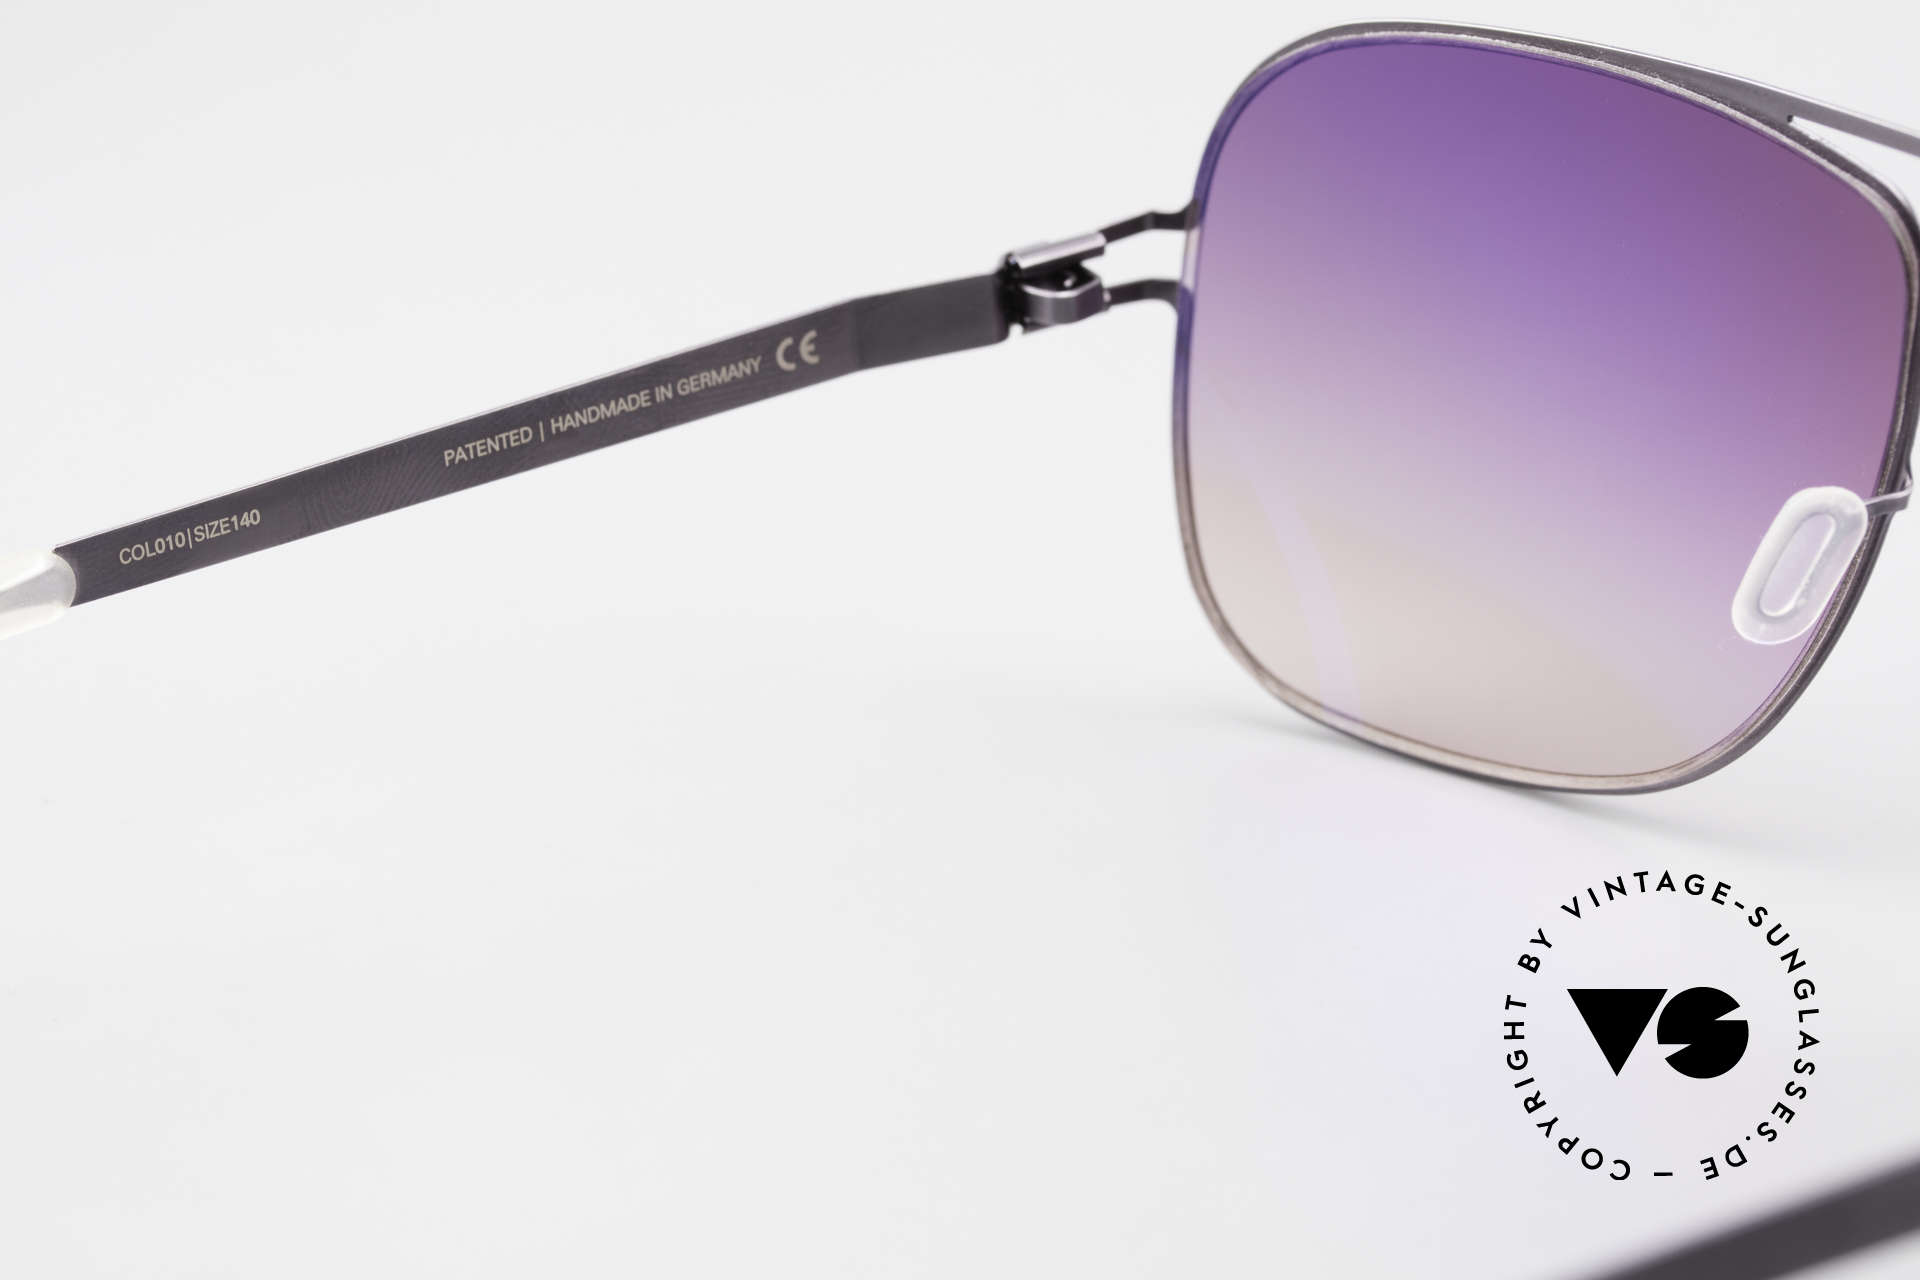 Mykita Rolf Angelina Jolie Mykita Shades, worn by Brad Pitt (rare & in high demand, meanwhile), Made for Men and Women